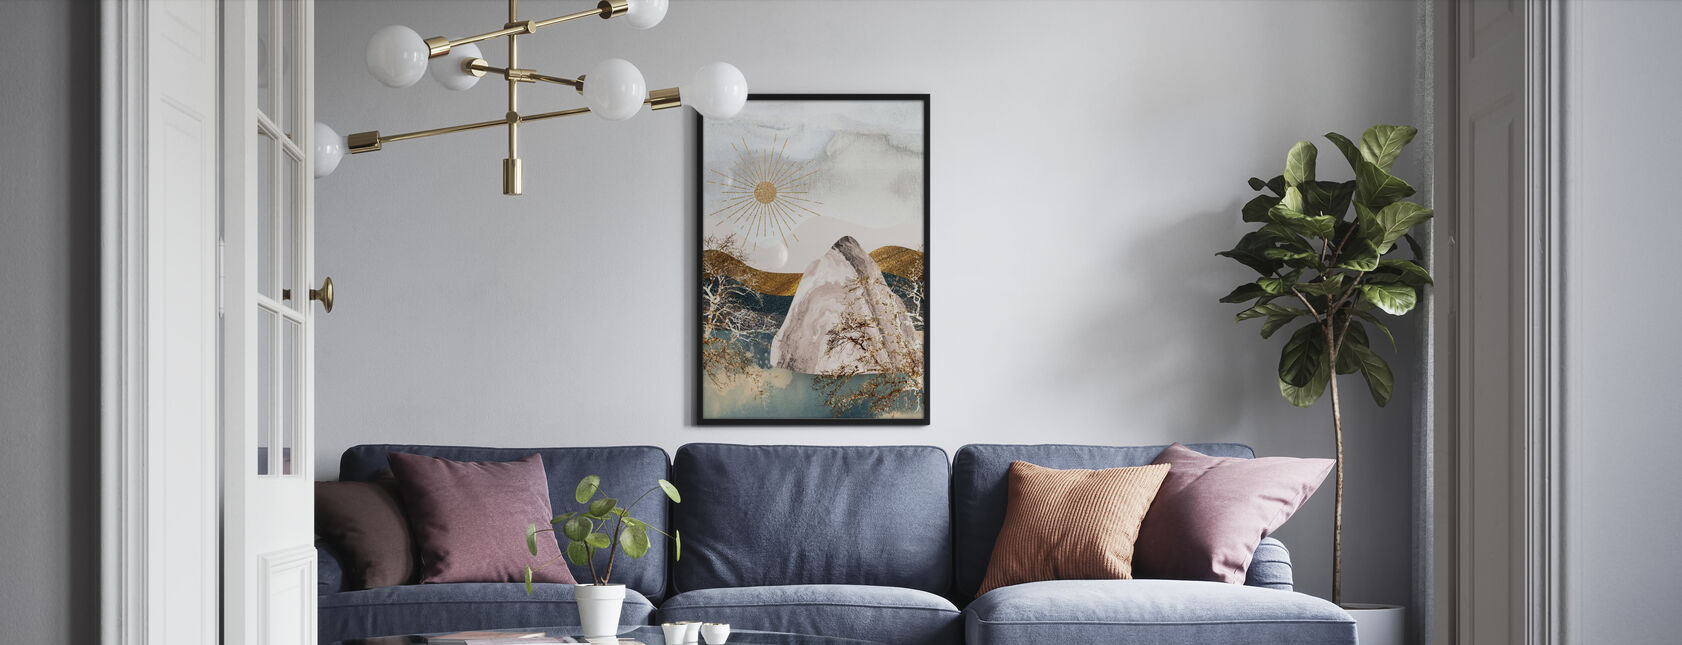 Iceberg and the Midnight Sun - Poster - Living Room